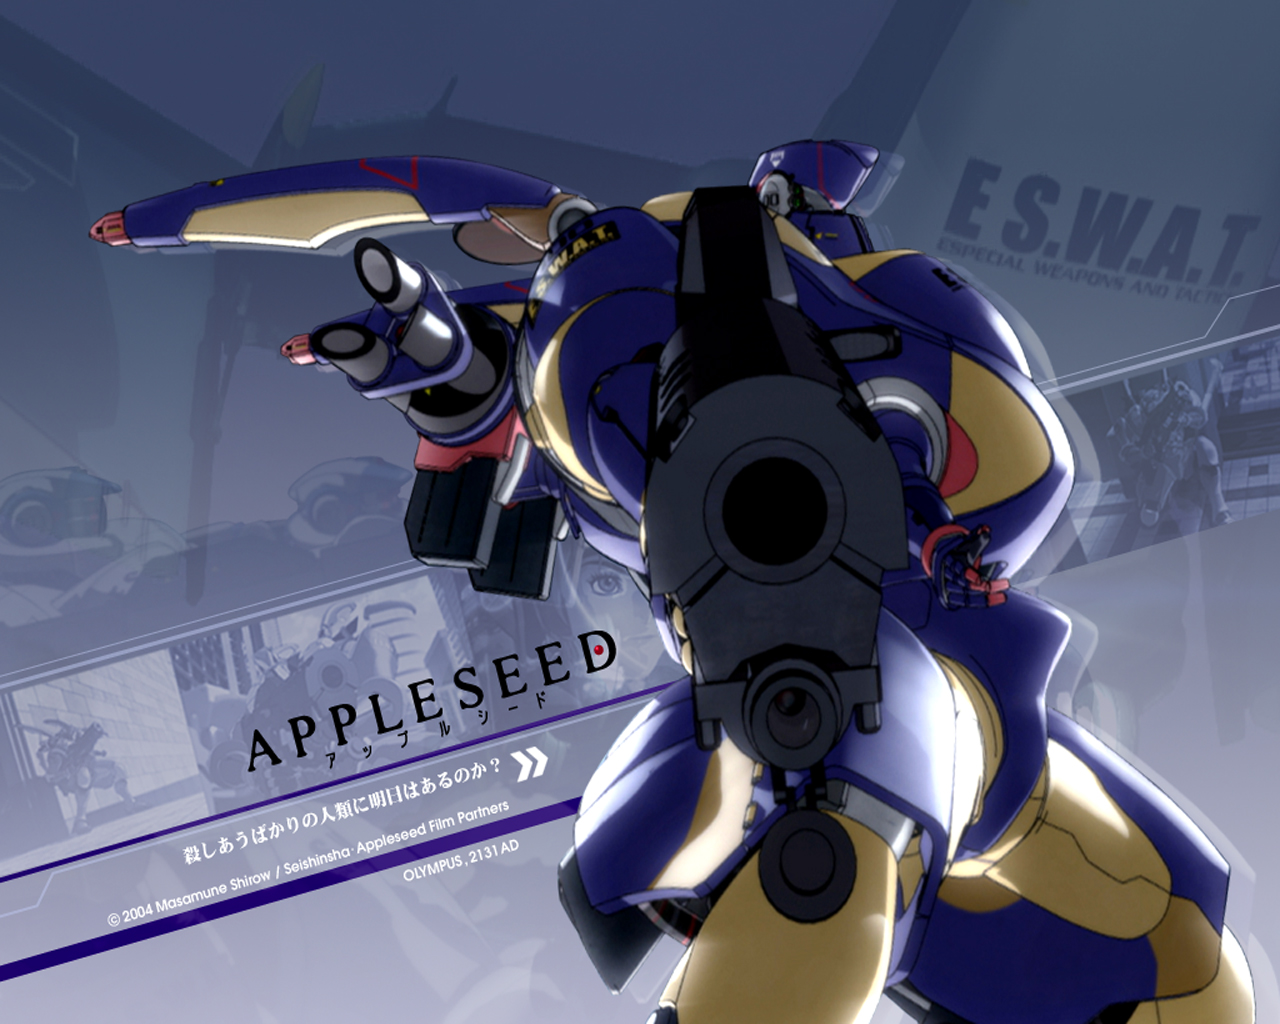 appleseed_movie_04wp01.jpg